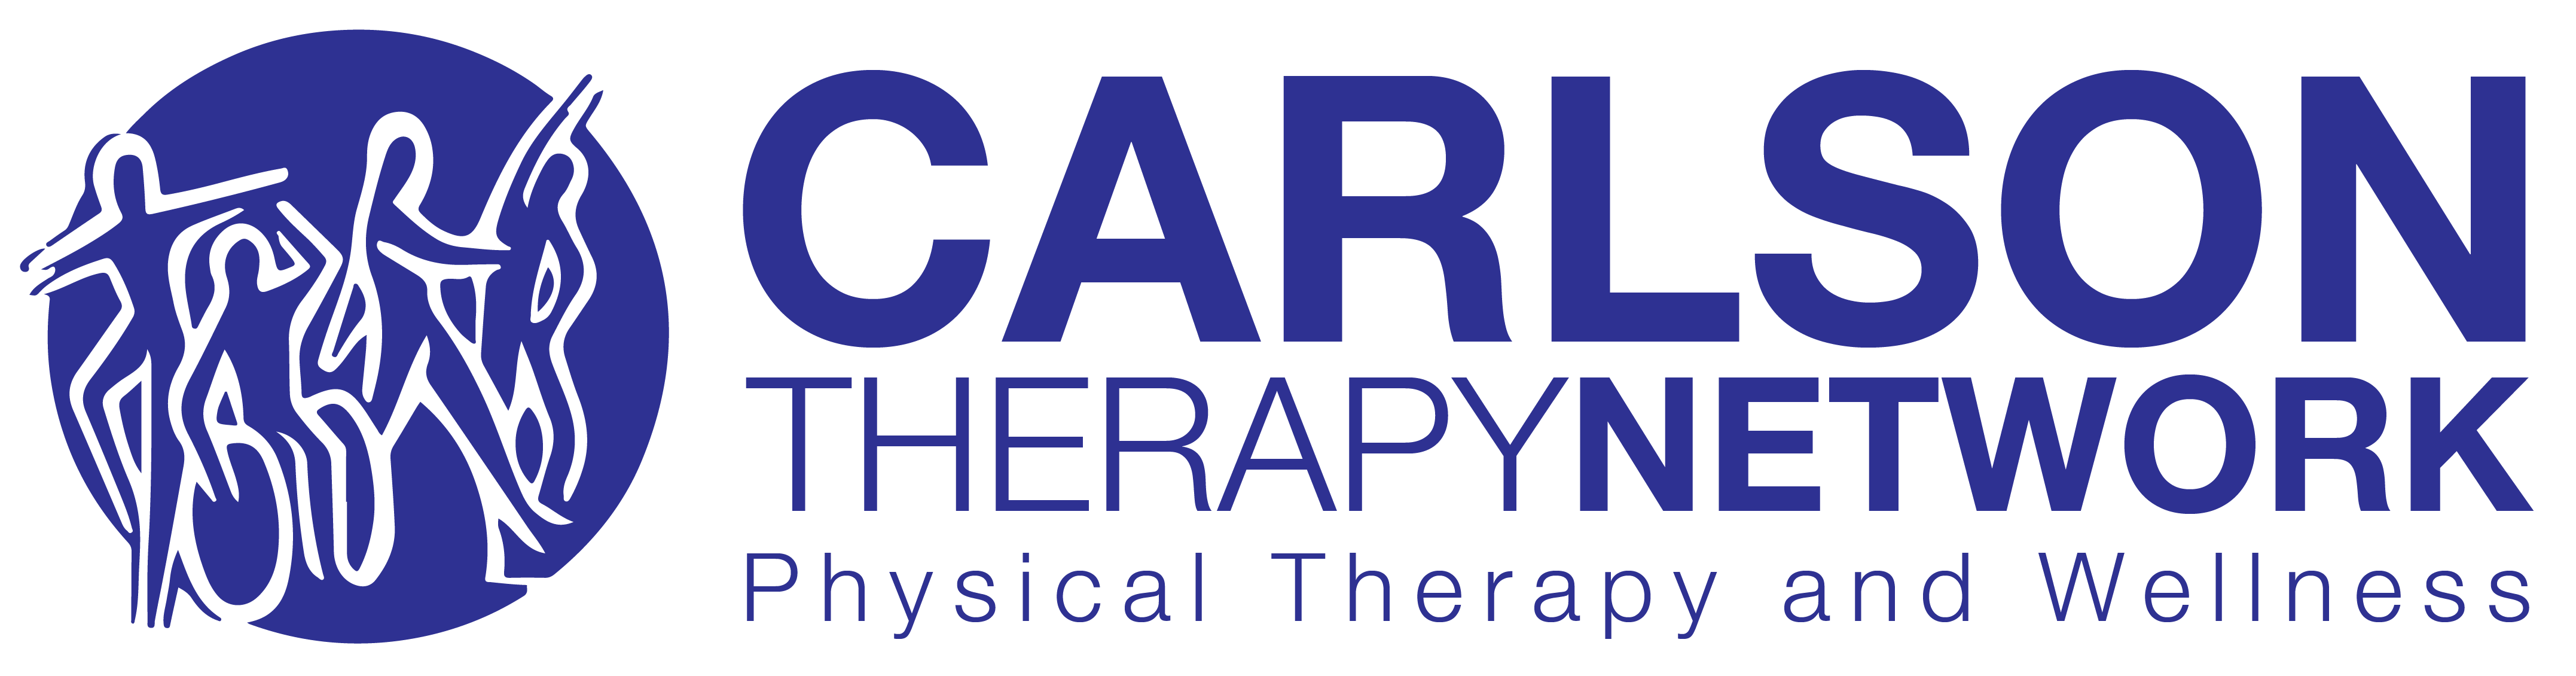 Carlson Therapy